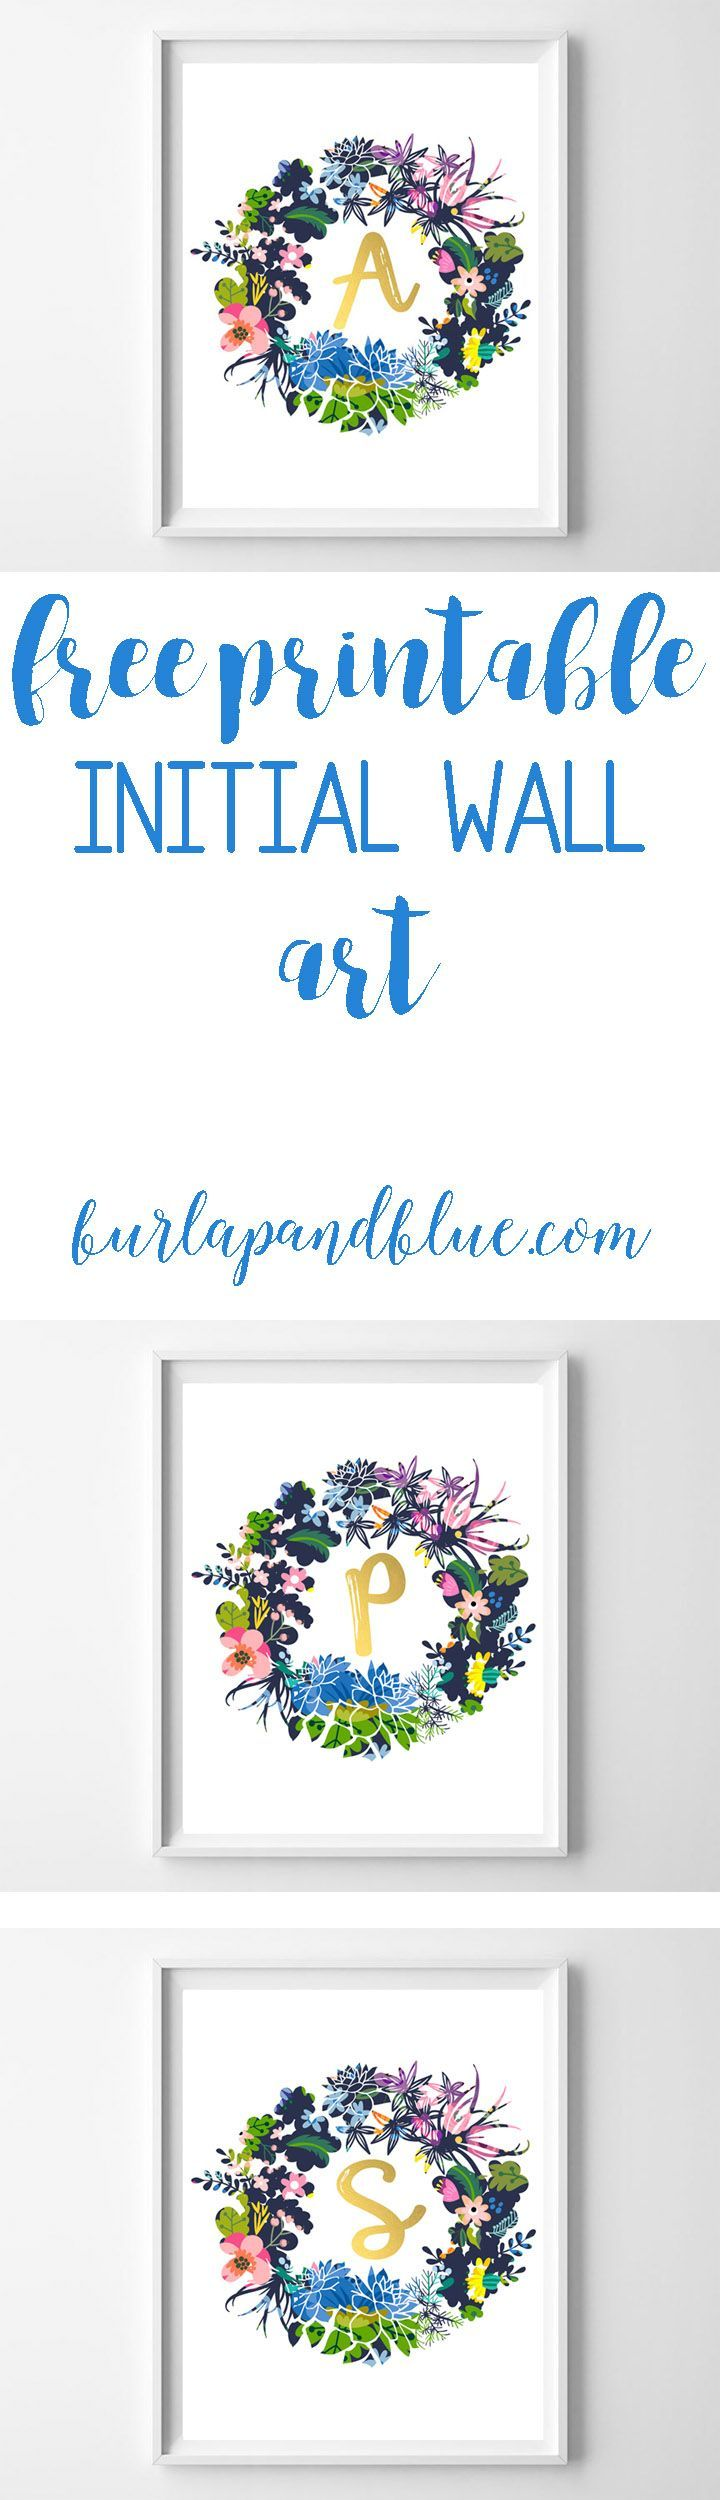 free printable initial wreath wall art! perfect for nursery art, wall art or gallery walls!